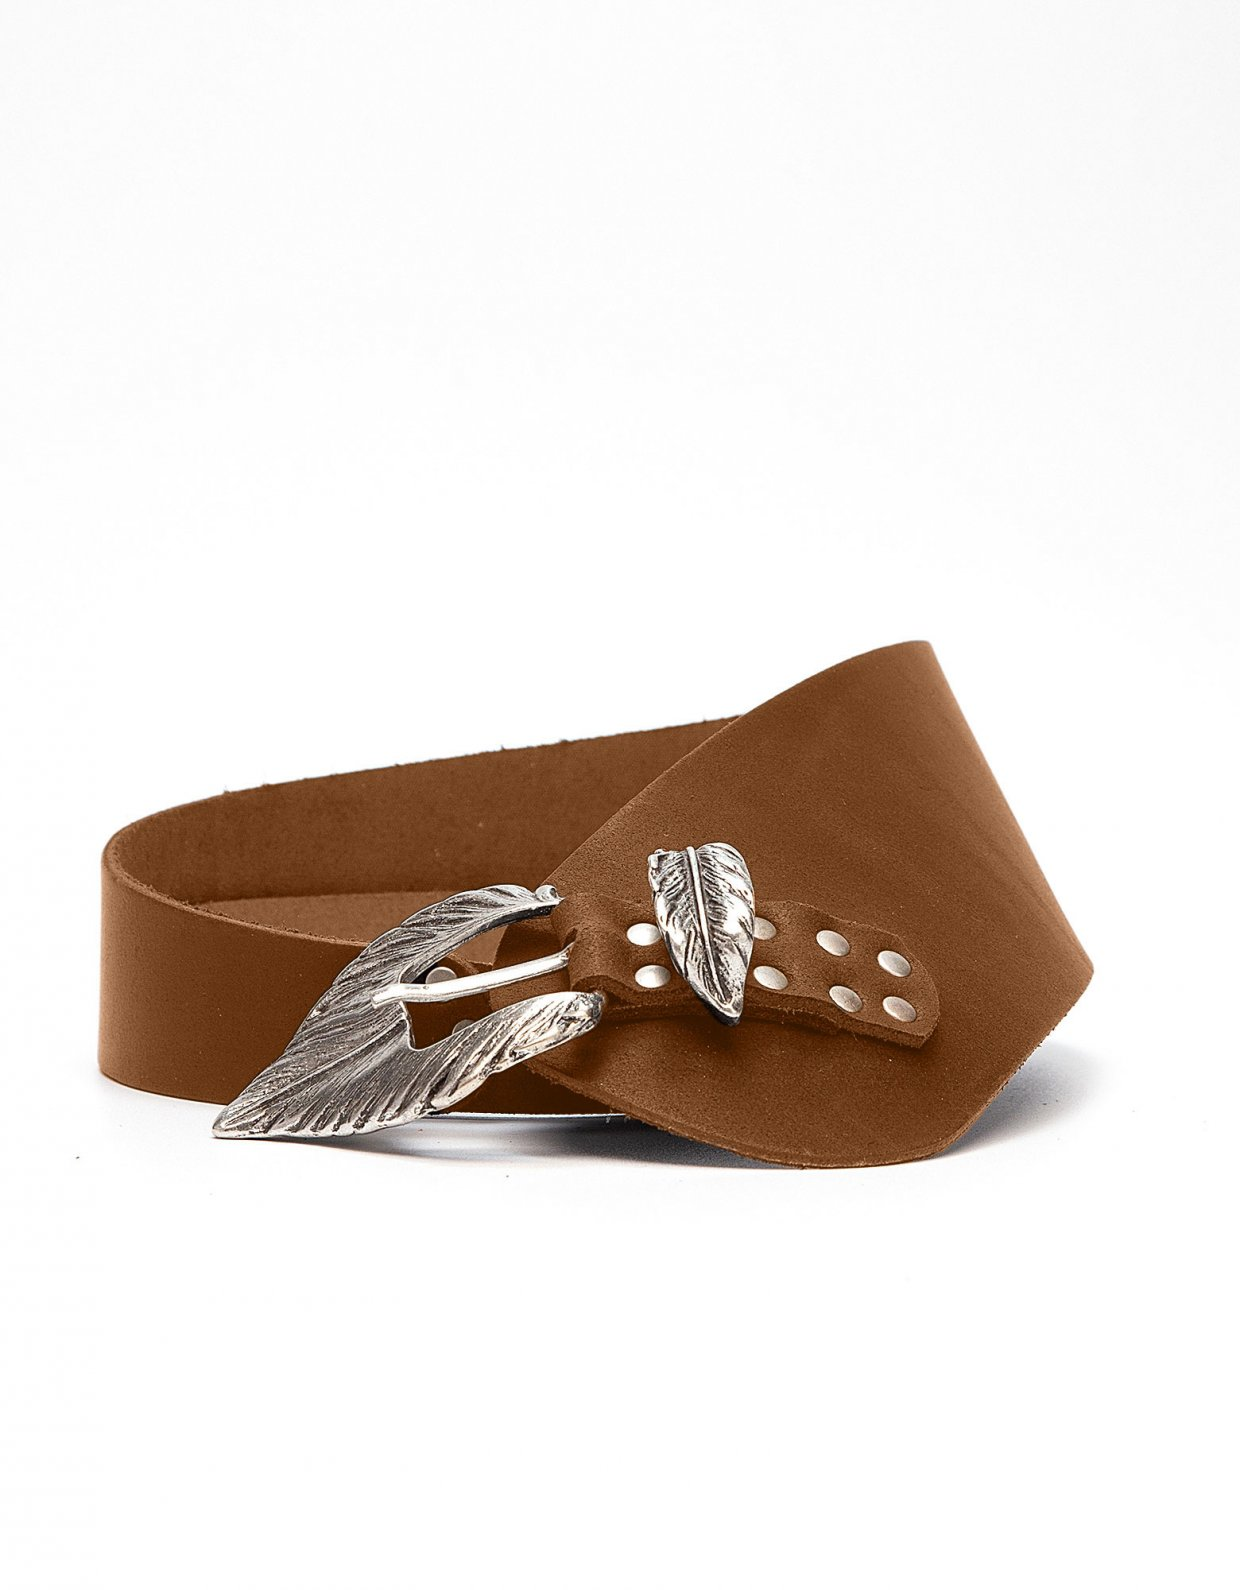 Peace & Chaos Leaf asymmetric leather belt tanned